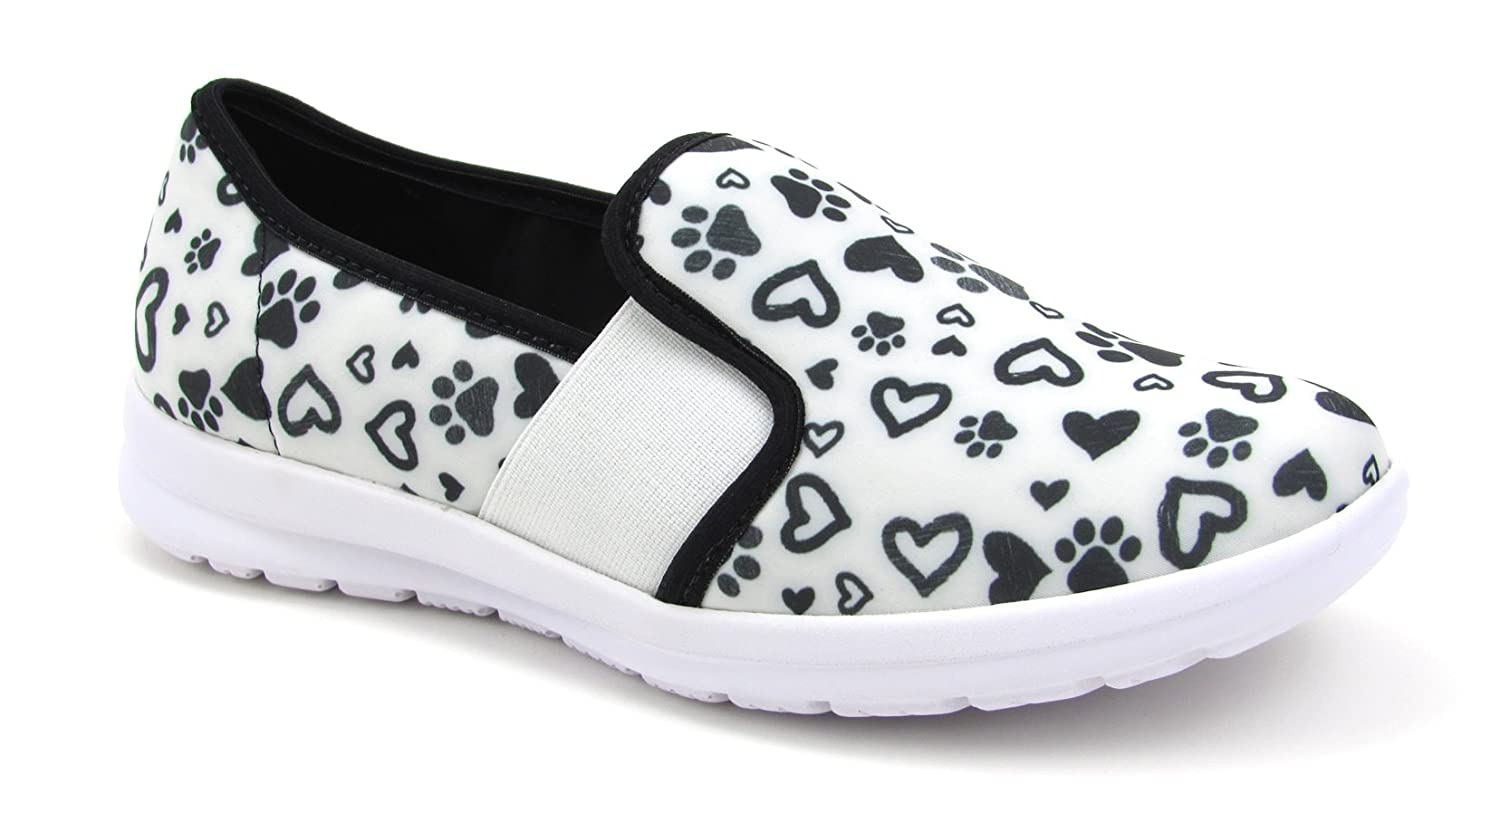 Keep Nursing レディース B07D2HKBCJ 7 B(M) US|Paws and Hearts- White With Black Paws and Hearts- White With Black 7 B(M) US, ペーパーアイテム スタジオK:63614726 --- to-heart.jp